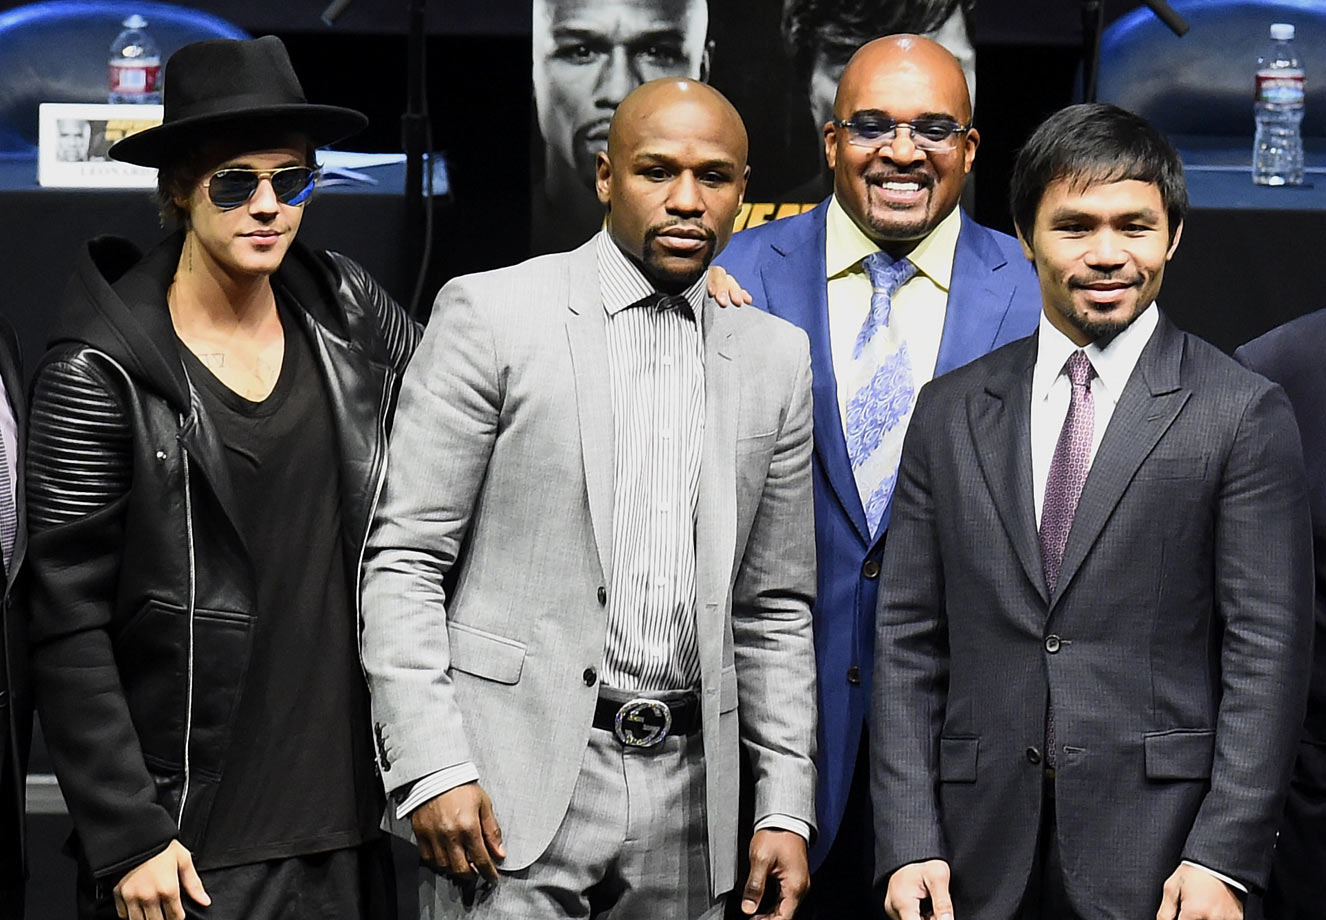 Justin Bieber poses with Floyd Mayweather Jr., CEO of Mayweather Productions Leonard Ellerbe, and Manny Pacquiao during the Floyd Mayweather vs. Manny Pacquiao Press Conference on March 11, 2015 at Nokia Theatre L.A. Live in Los Angeles.